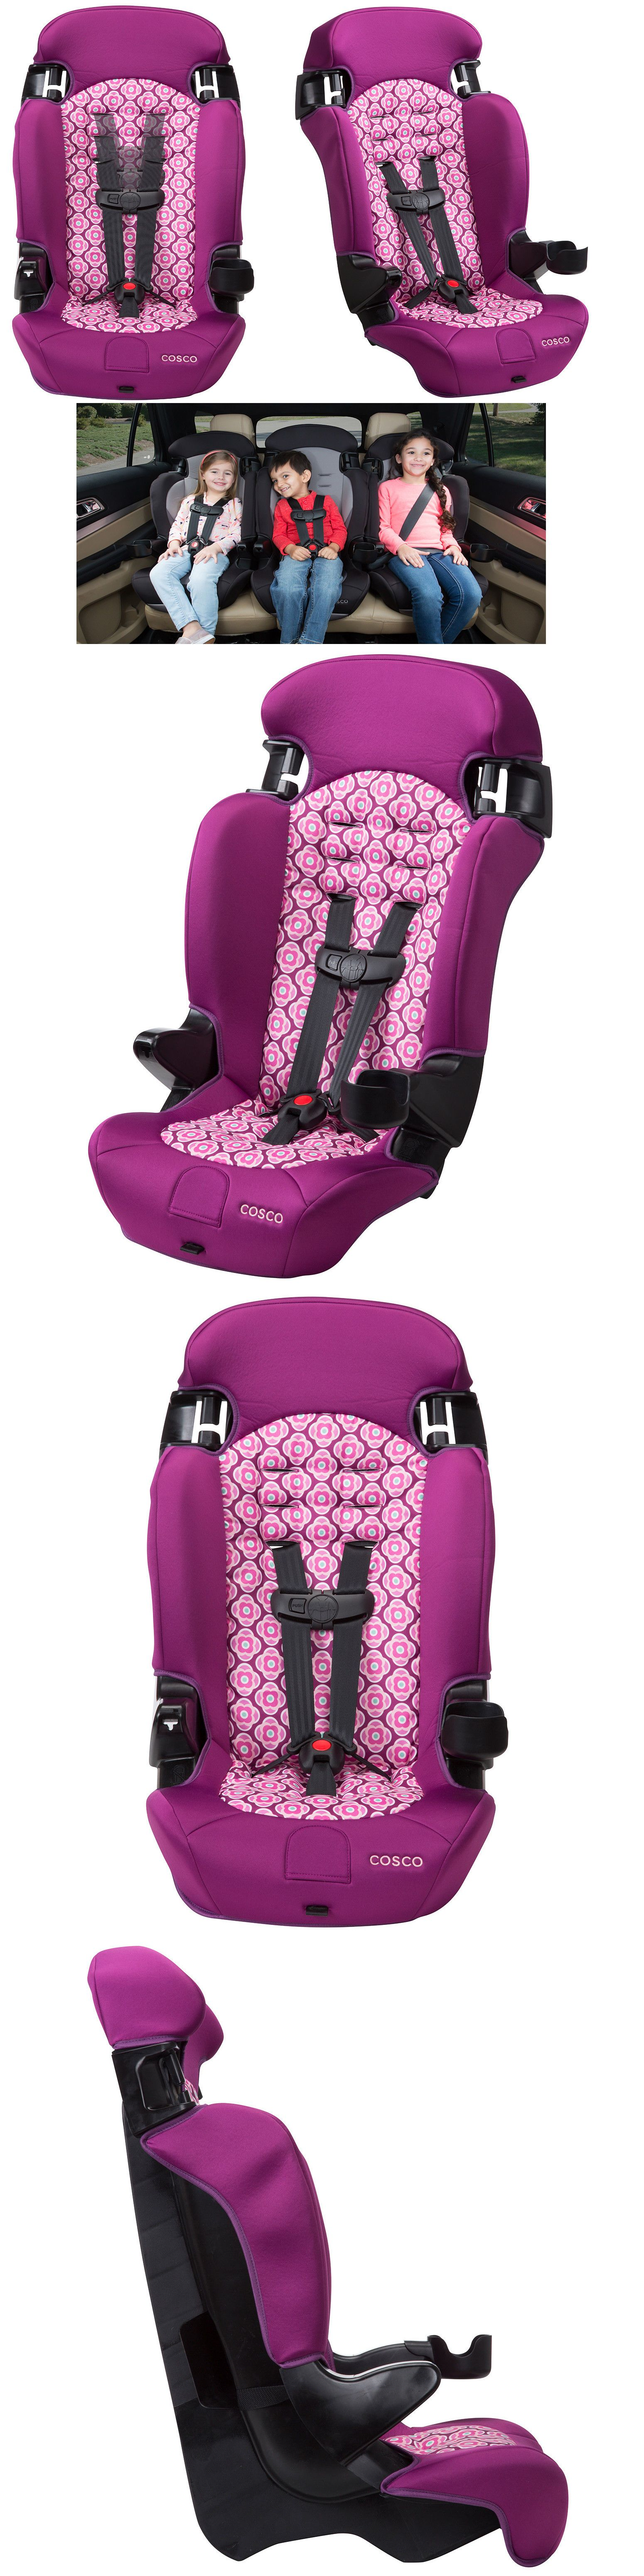 Car Booster Seat Glacier 2-in-1 Harness Convertible Chair For Boy Girl Toddler